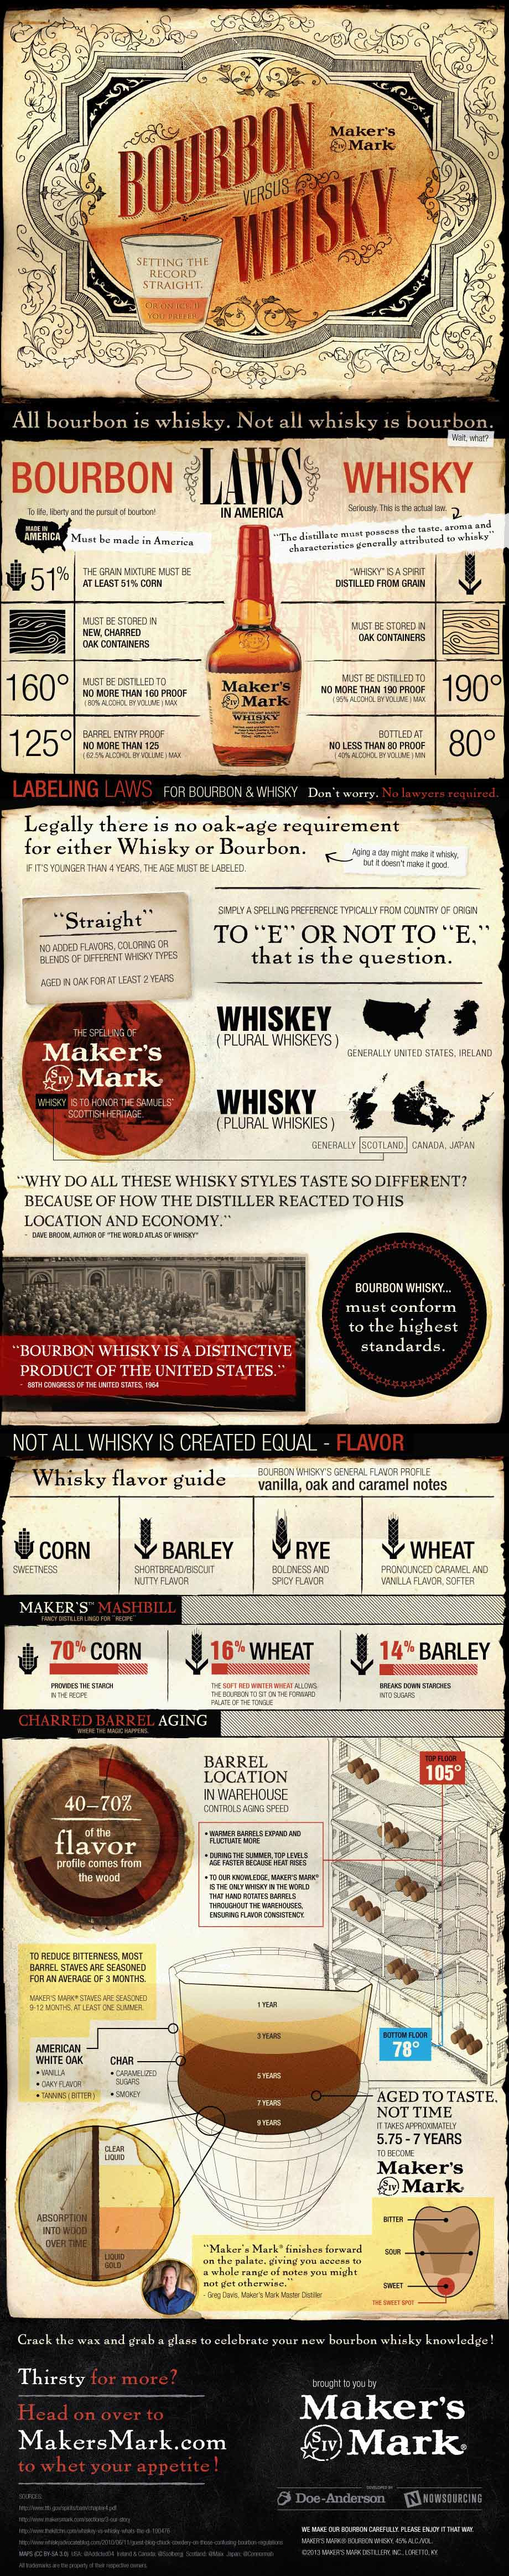 Bourbon-vs-Whisky Infographic (1)